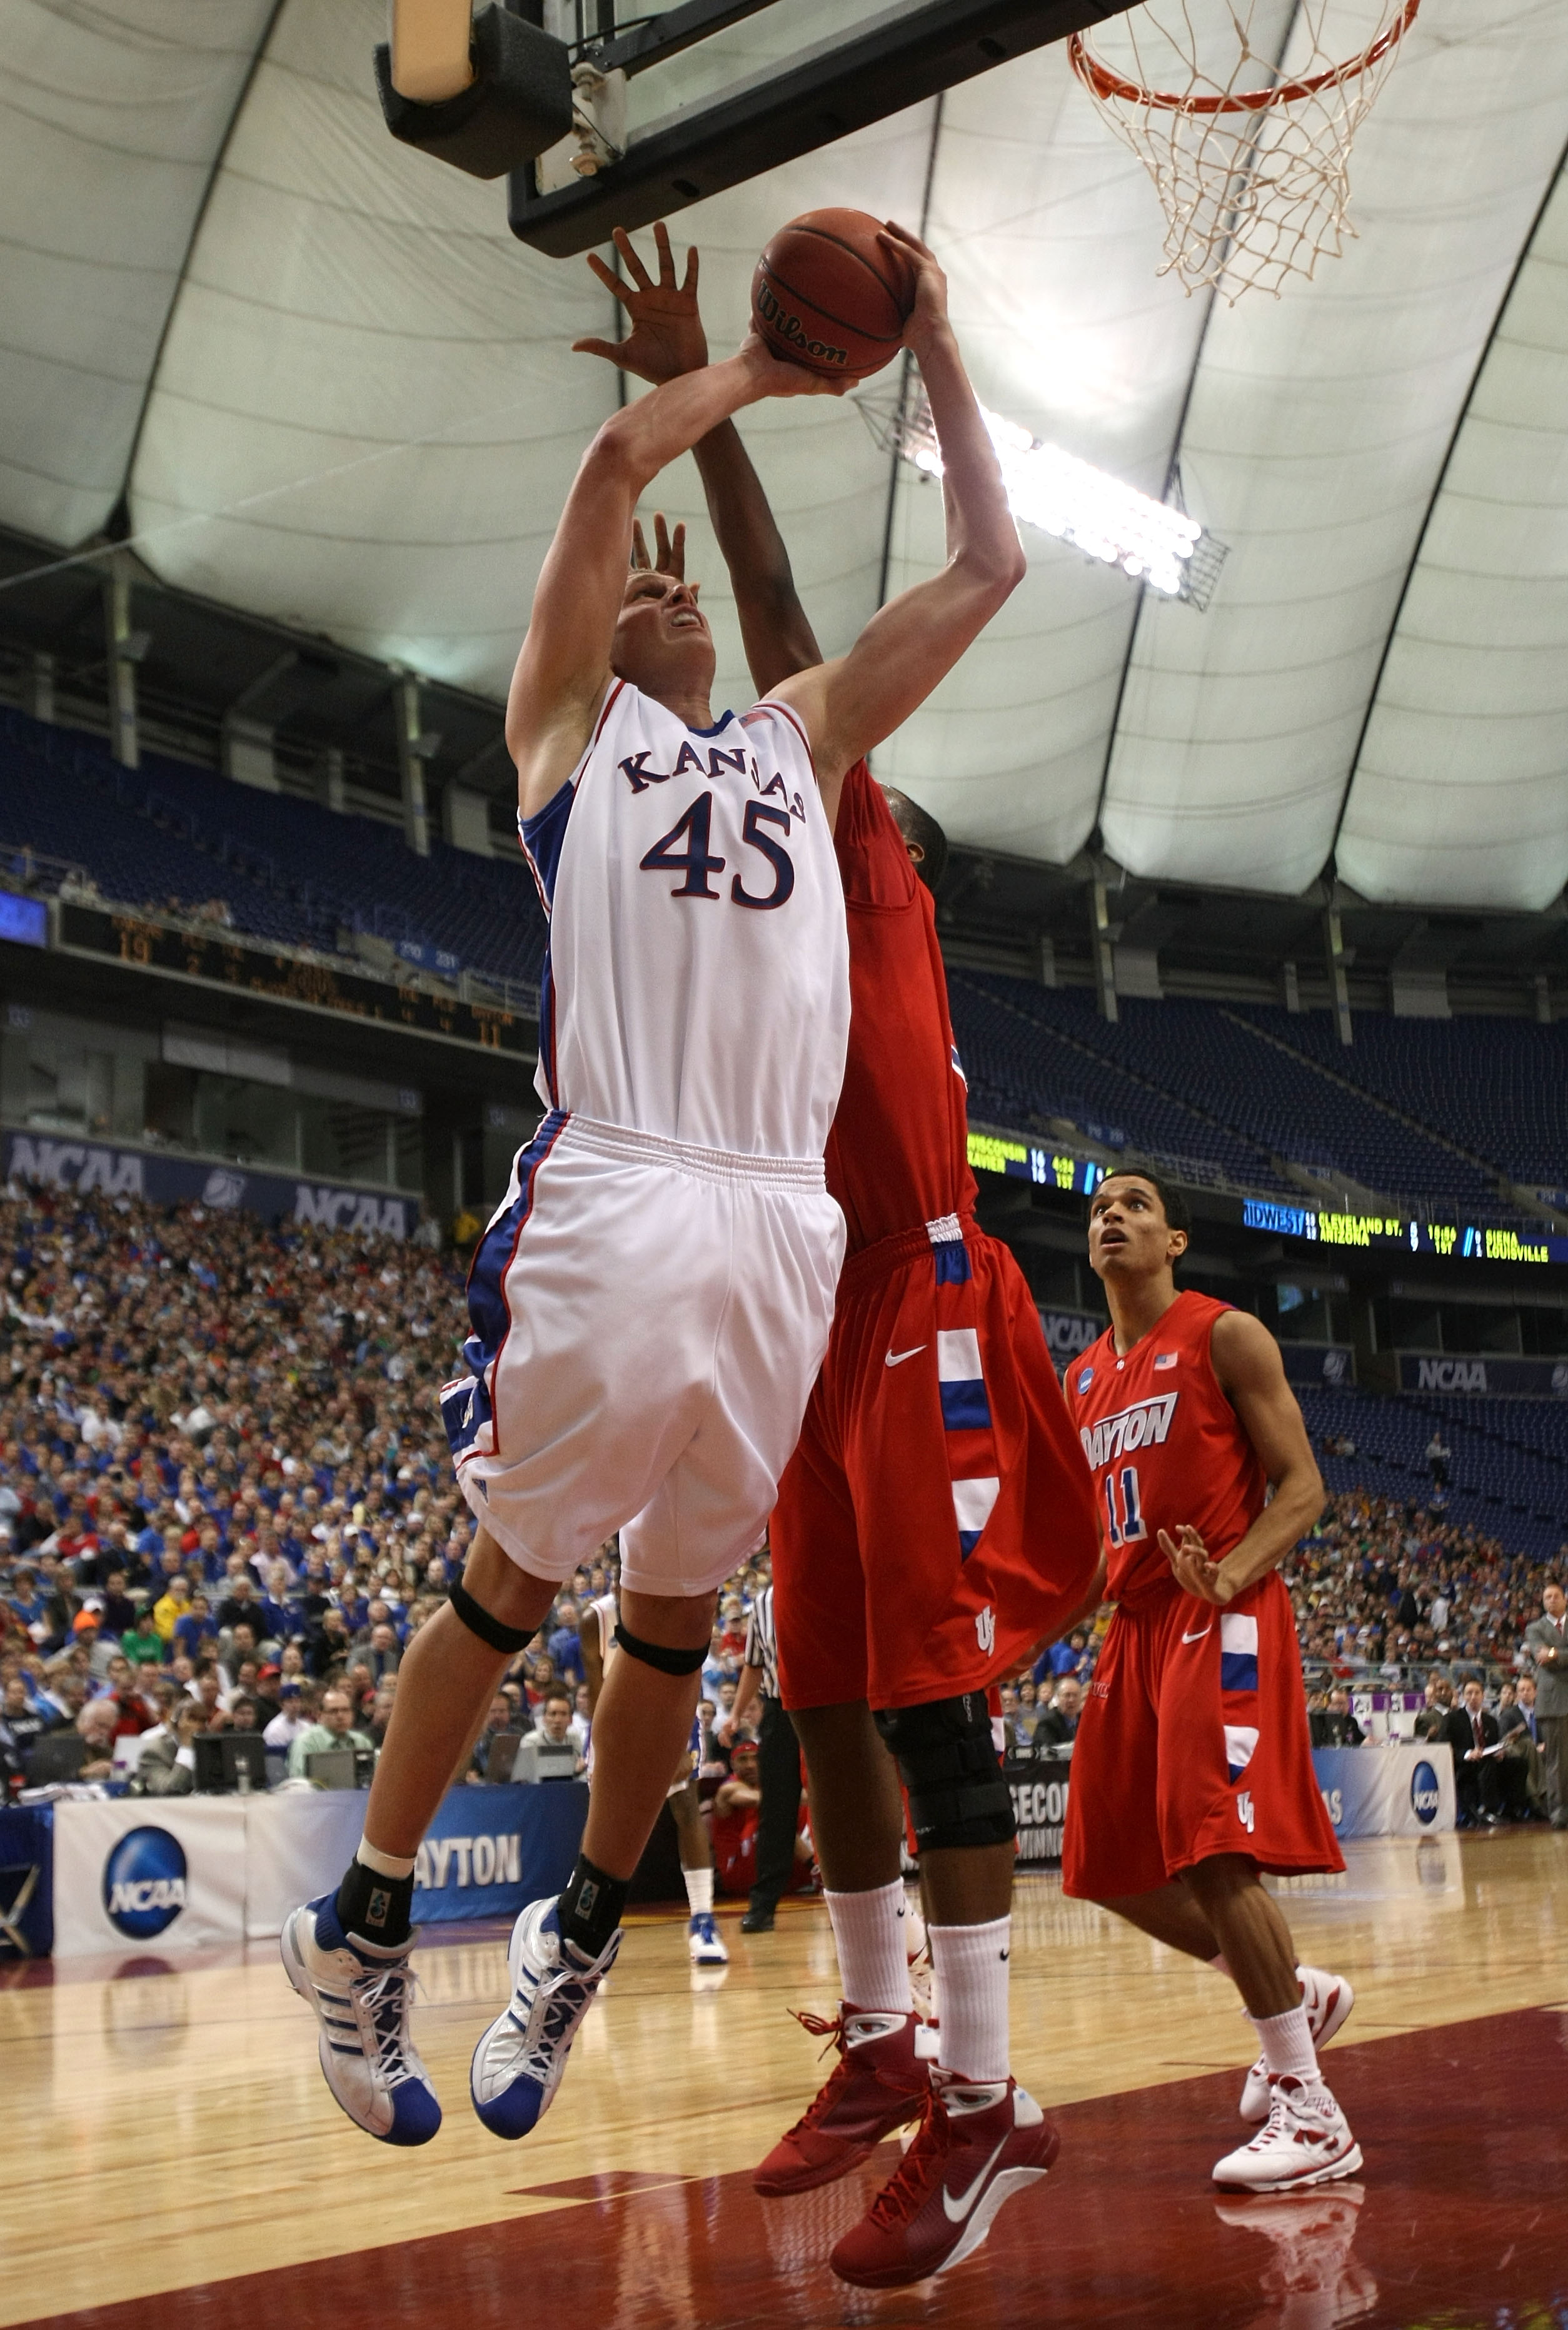 MINNEAPOLIS - MARCH 22:  Cole Aldrich #45 of the Kansas Jayhawks goes up for a shot attempt in the first half against the Dayton Flyers during the second round of the NCAA Division I Men's Basketball Tournament at the Hubert H. Humphrey Metrodome on March